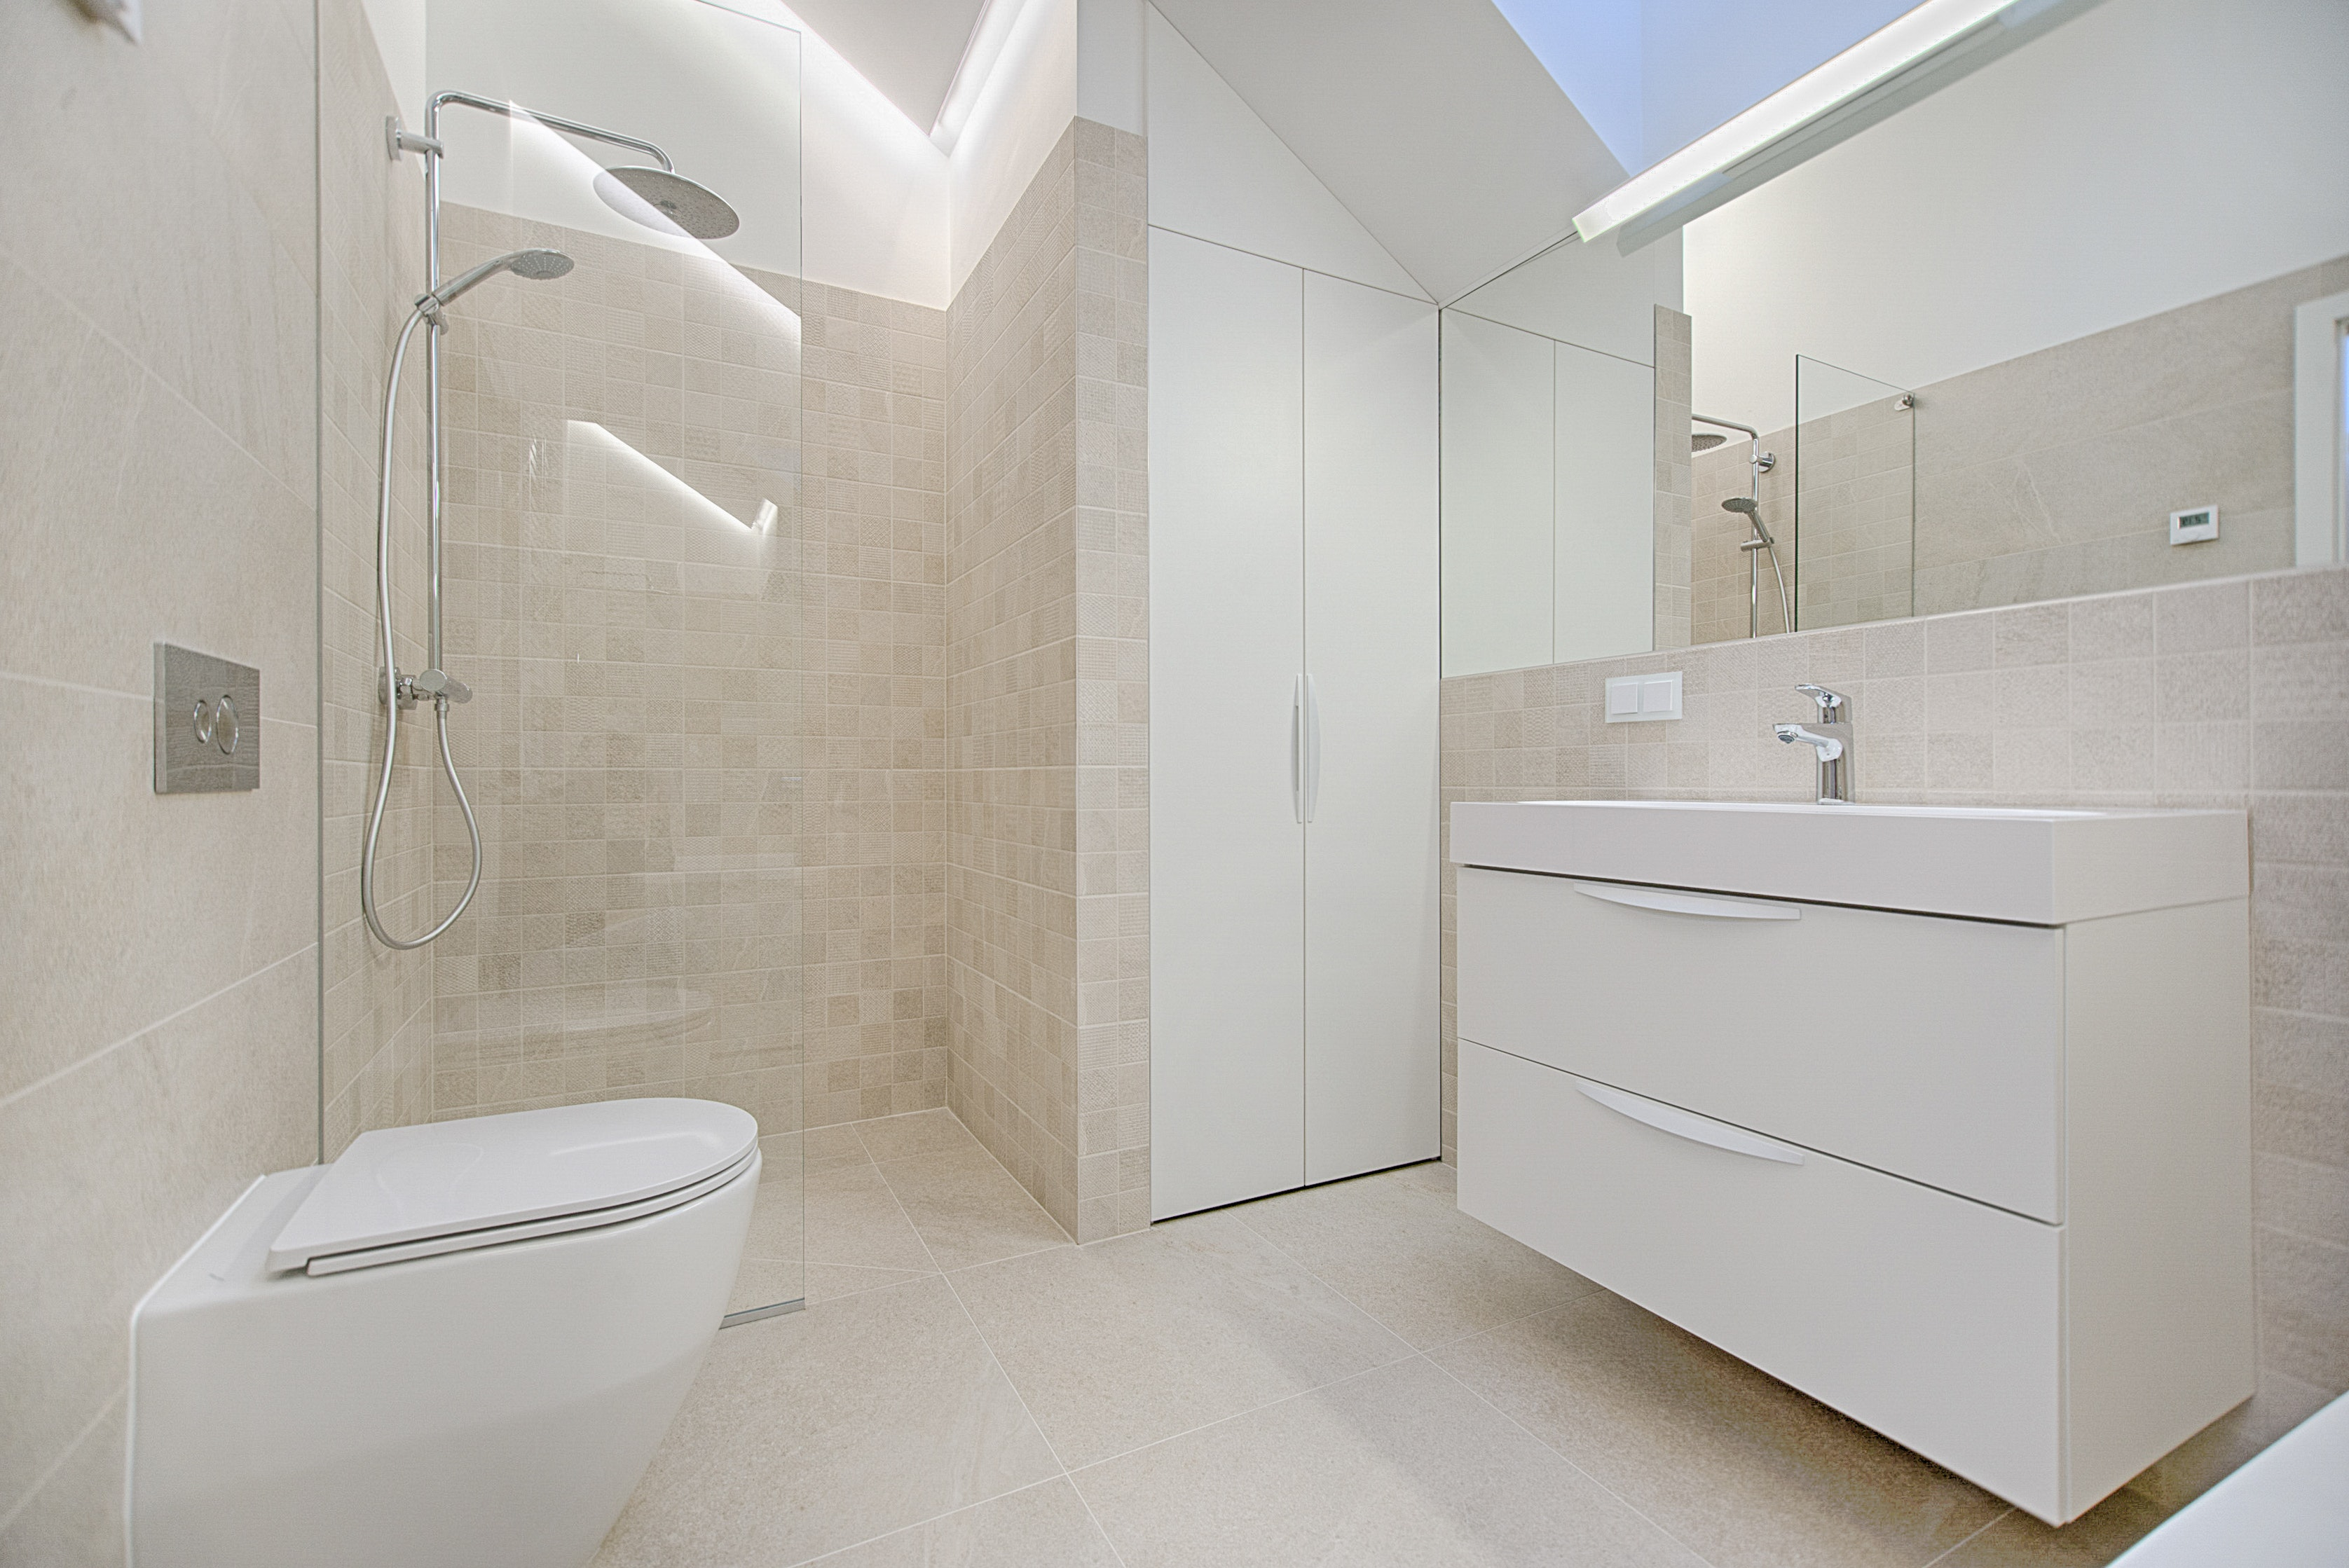 Which Toilet Do Plumbers Recommend?